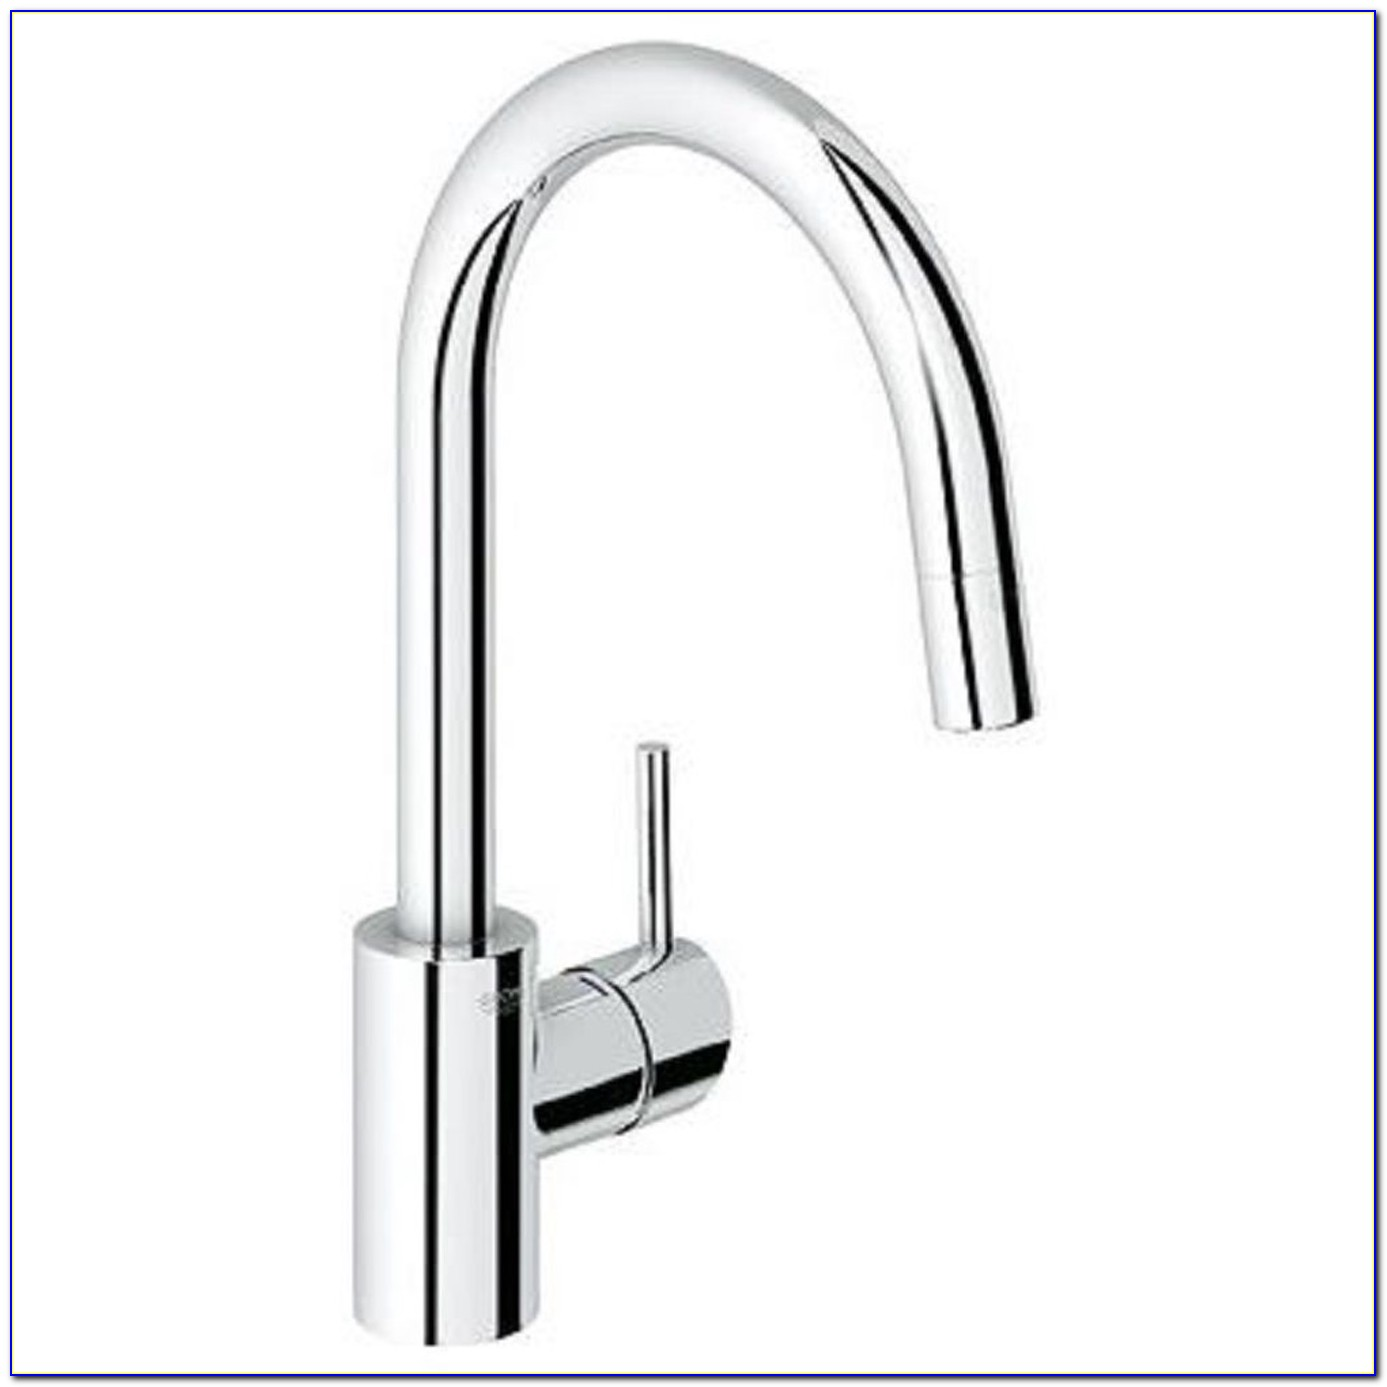 Grohe Bathroom Sink Taps